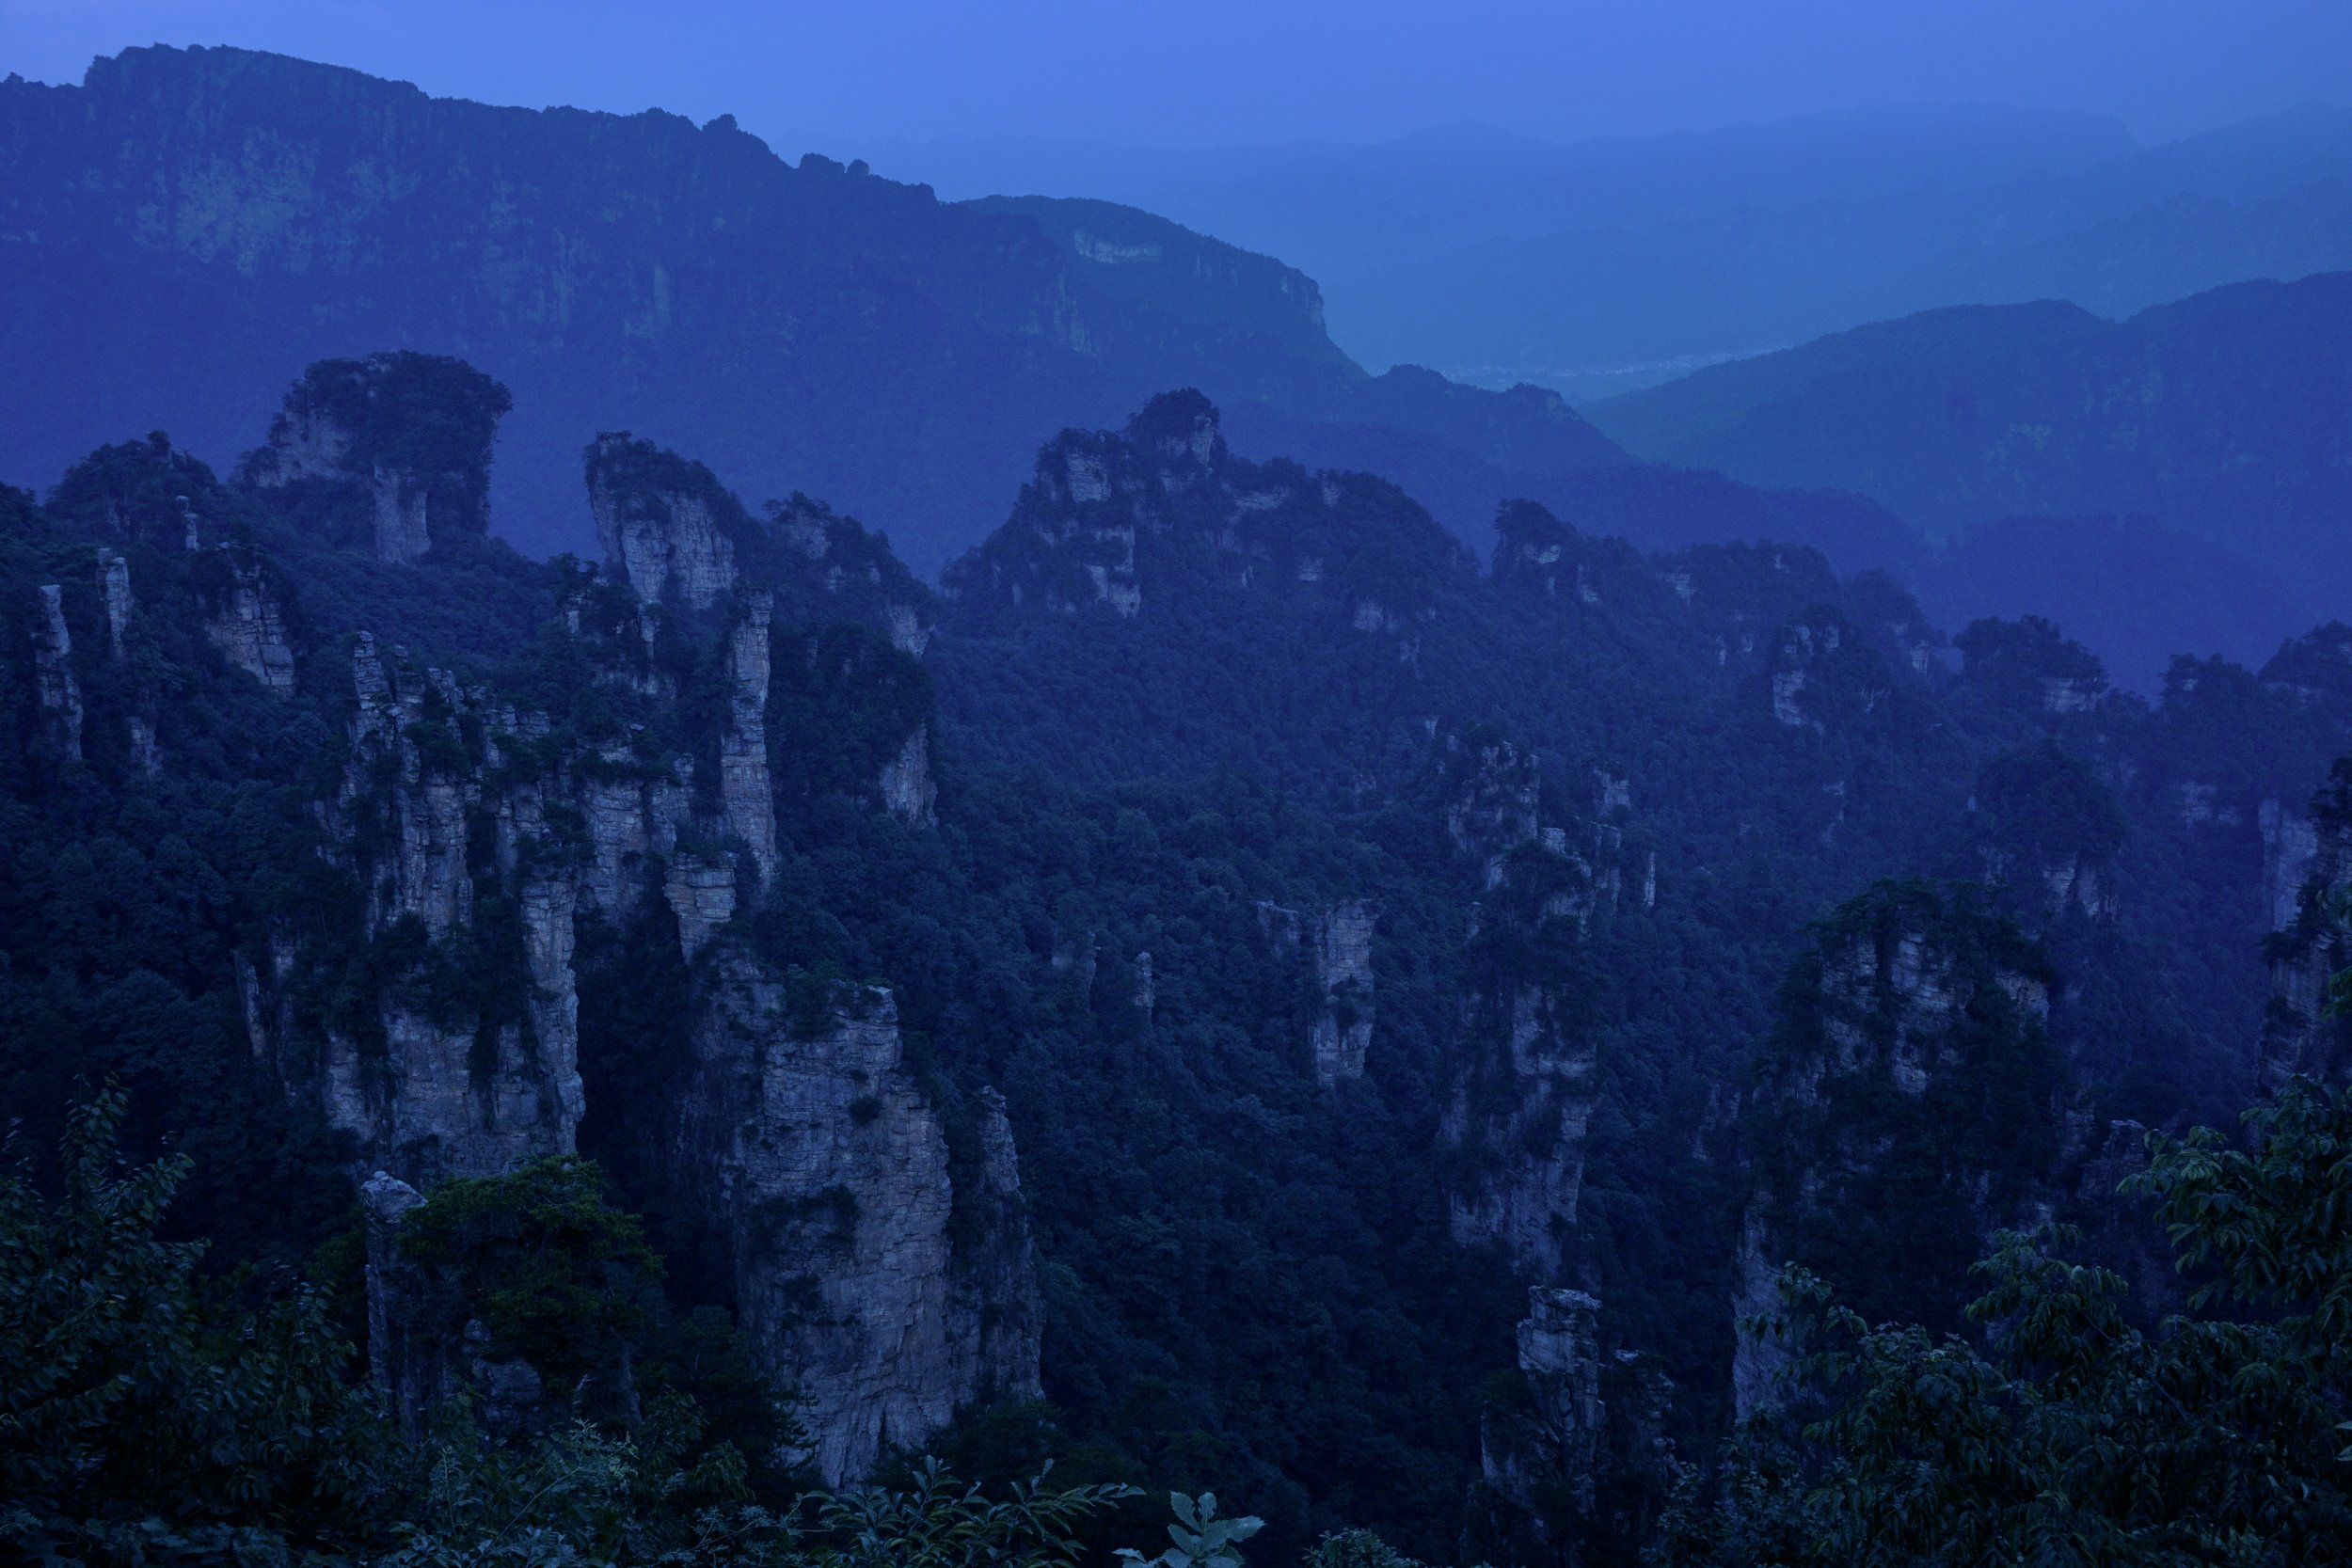 Zhangjiajie National Forest Park, Hunan Province, China.